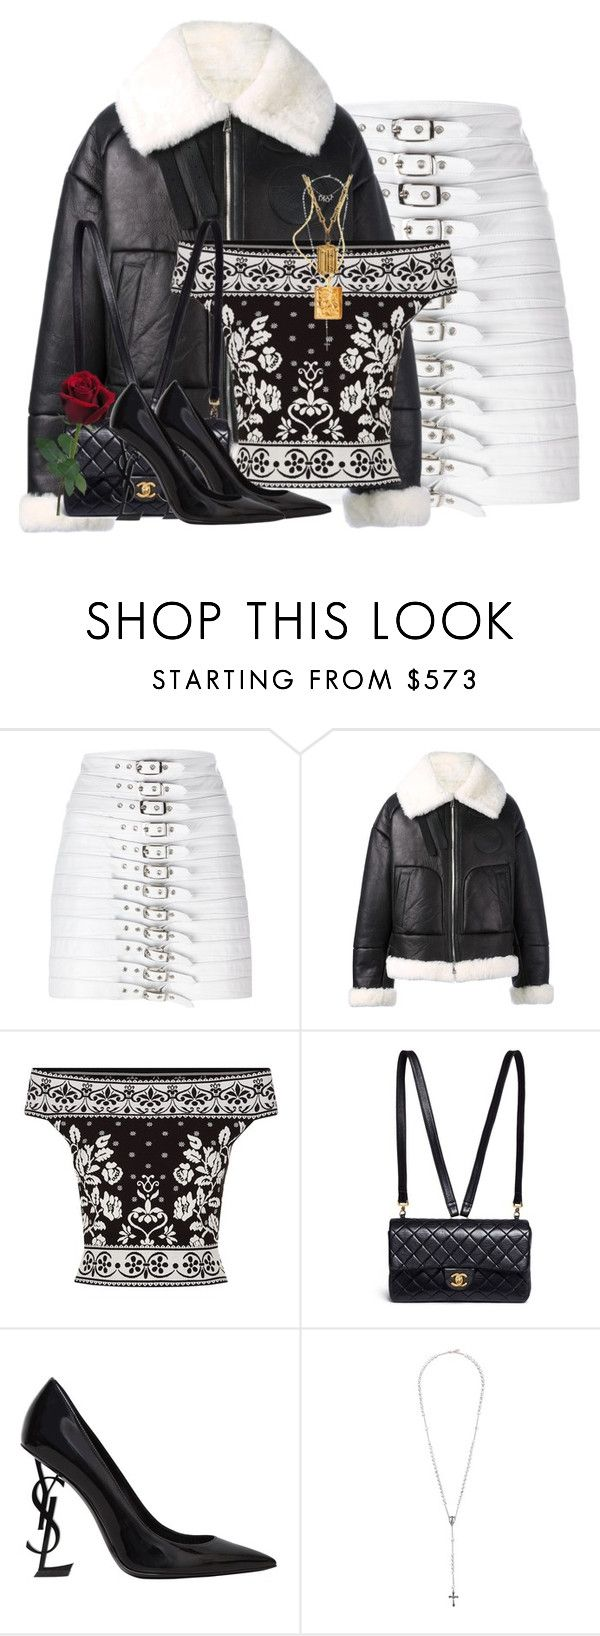 """Untitled #1216"" by jetadorejas ❤ liked on Polyvore featuring Manokhi, Juun.j, Alexander McQueen, Chanel, Yves Saint Laurent, Givenchy, Louis Vuitton and Christian Dior"